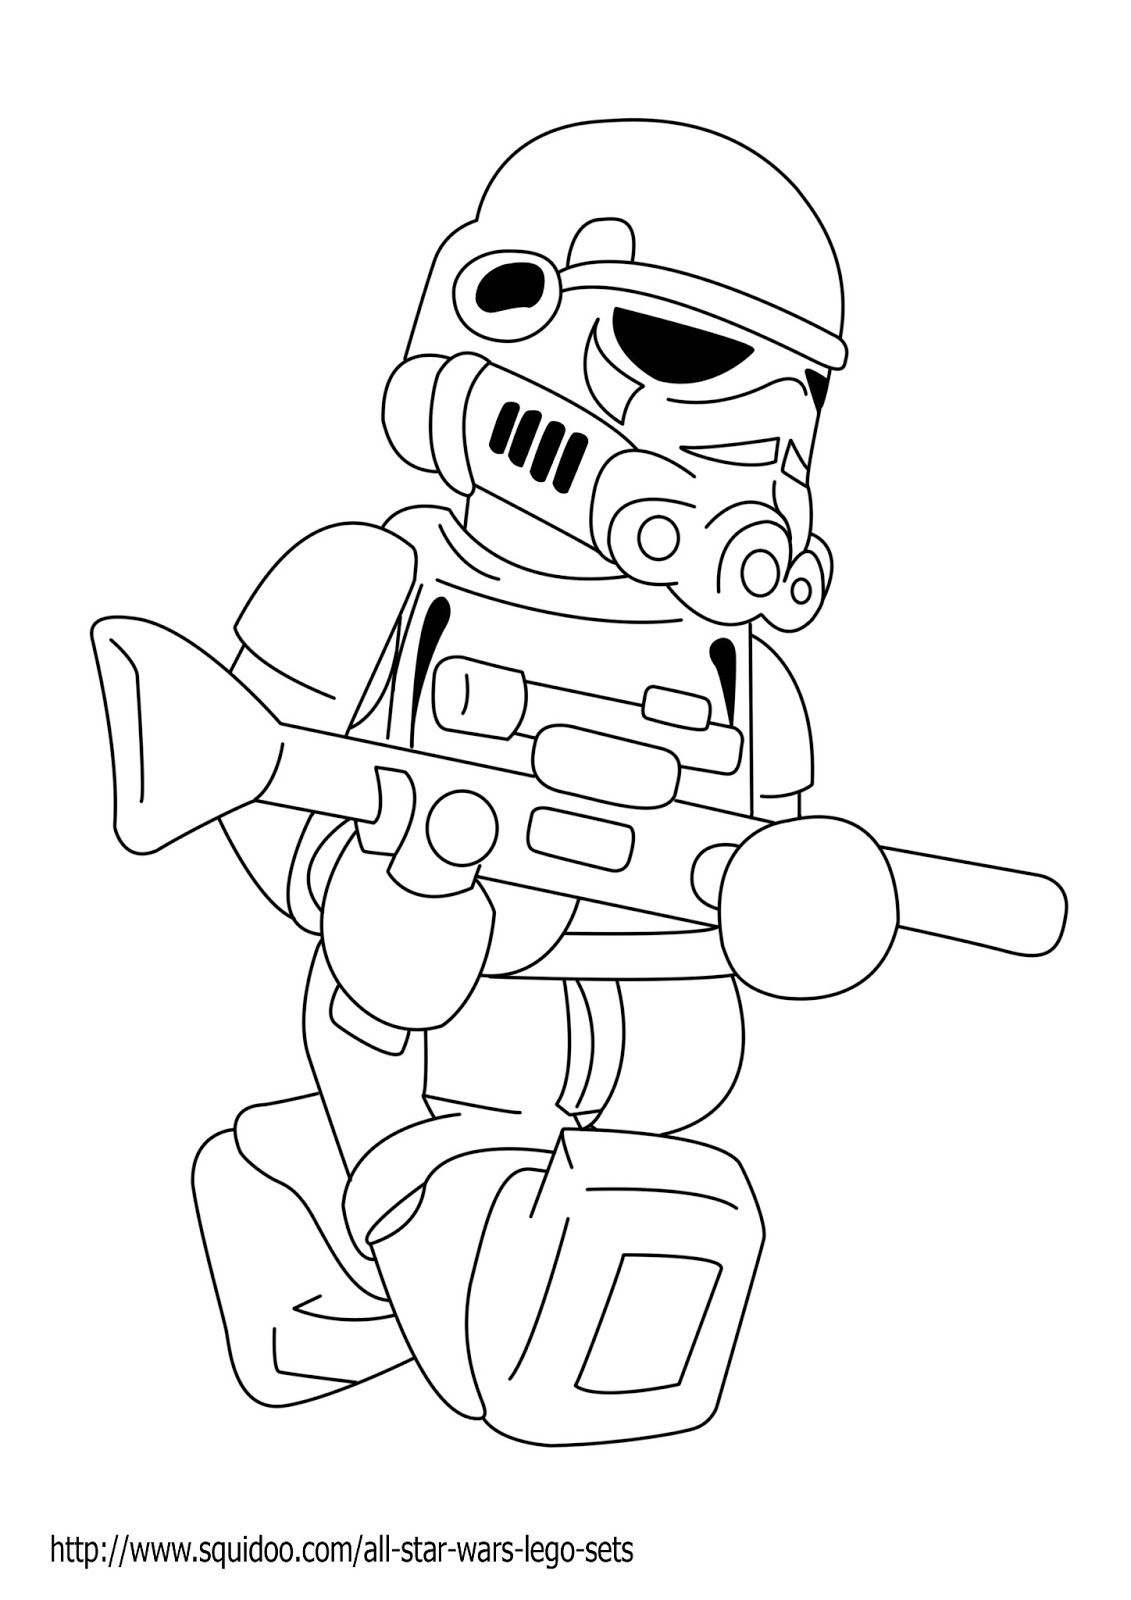 Lego Star Wars Coloring Pages Printable Star Wars Coloring Pages Free For Kids Picture Lego Coloring Pages Star Wars Coloring Book Lego Coloring